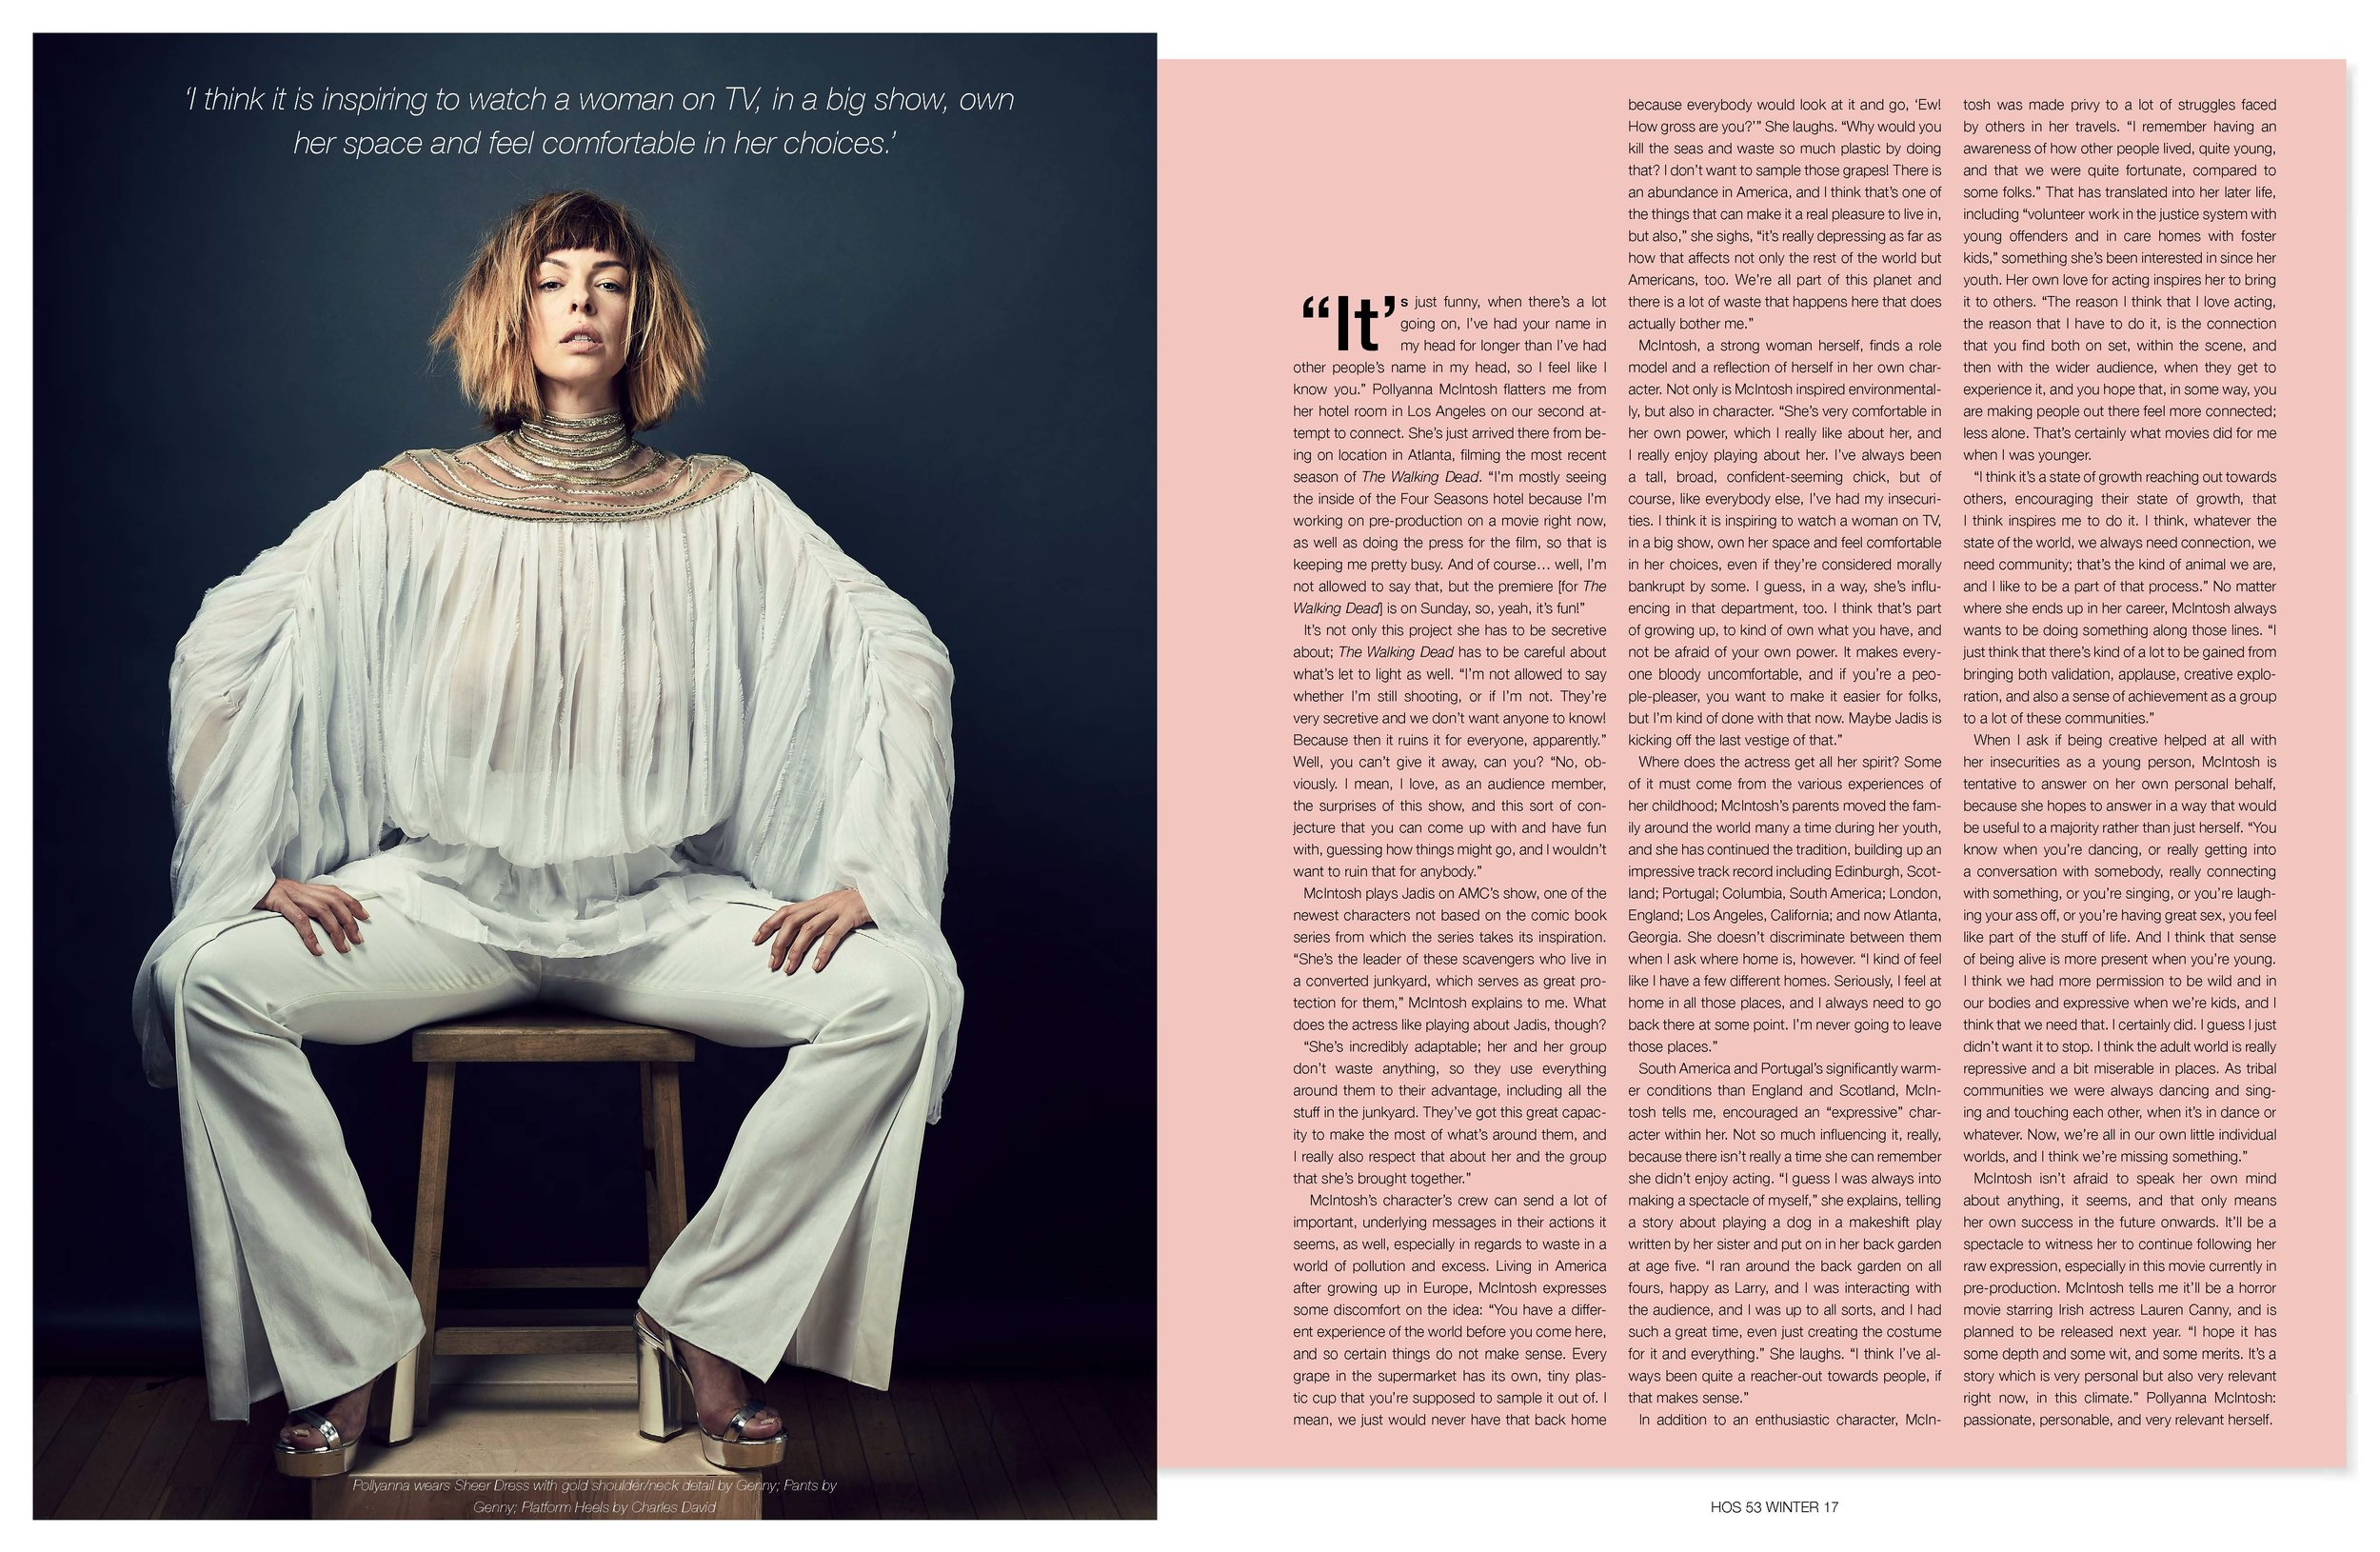 Pollyanna McIntosh - Interview - 'I think it is inspiring to watch a woman on TV, in a big show, own her space and feel comfortable in her choices.'(PHOTOGRAPHER: CHRISTOPHER PATEY // STYLIST: KELLY BROWN // HAIR BY MICHAEL KANYON USING AMERICAN ENGLISH FOR CELESTINE AGENCY // MAKEUP BY CHRISTINA GUERRA USING KAT VON D FOR CELESTINE AGENCY)